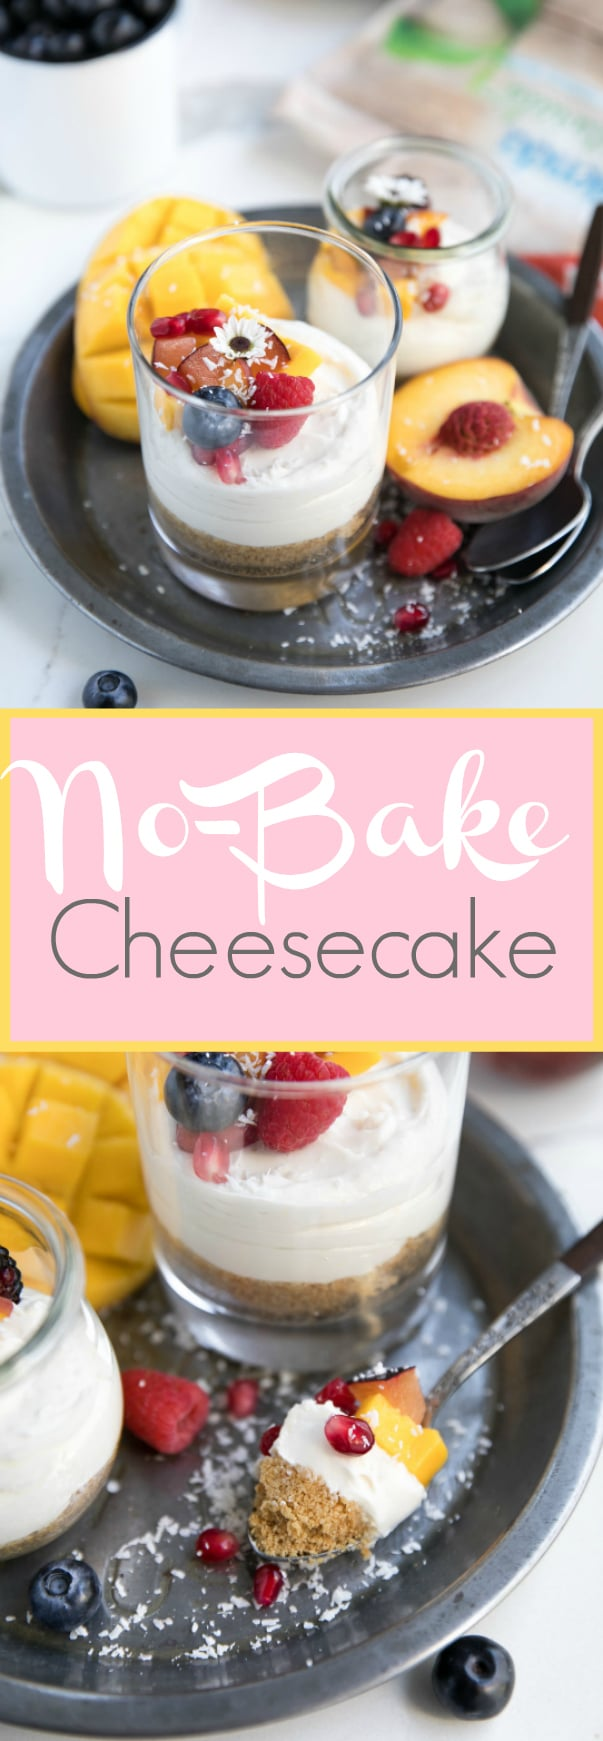 Easy No-Bake Summer Cheesecake via @theforkedspoon #cheesecake #dessert #nobake #lessaddedsugar #splenda #sponsored #fruit #theforkedspoon